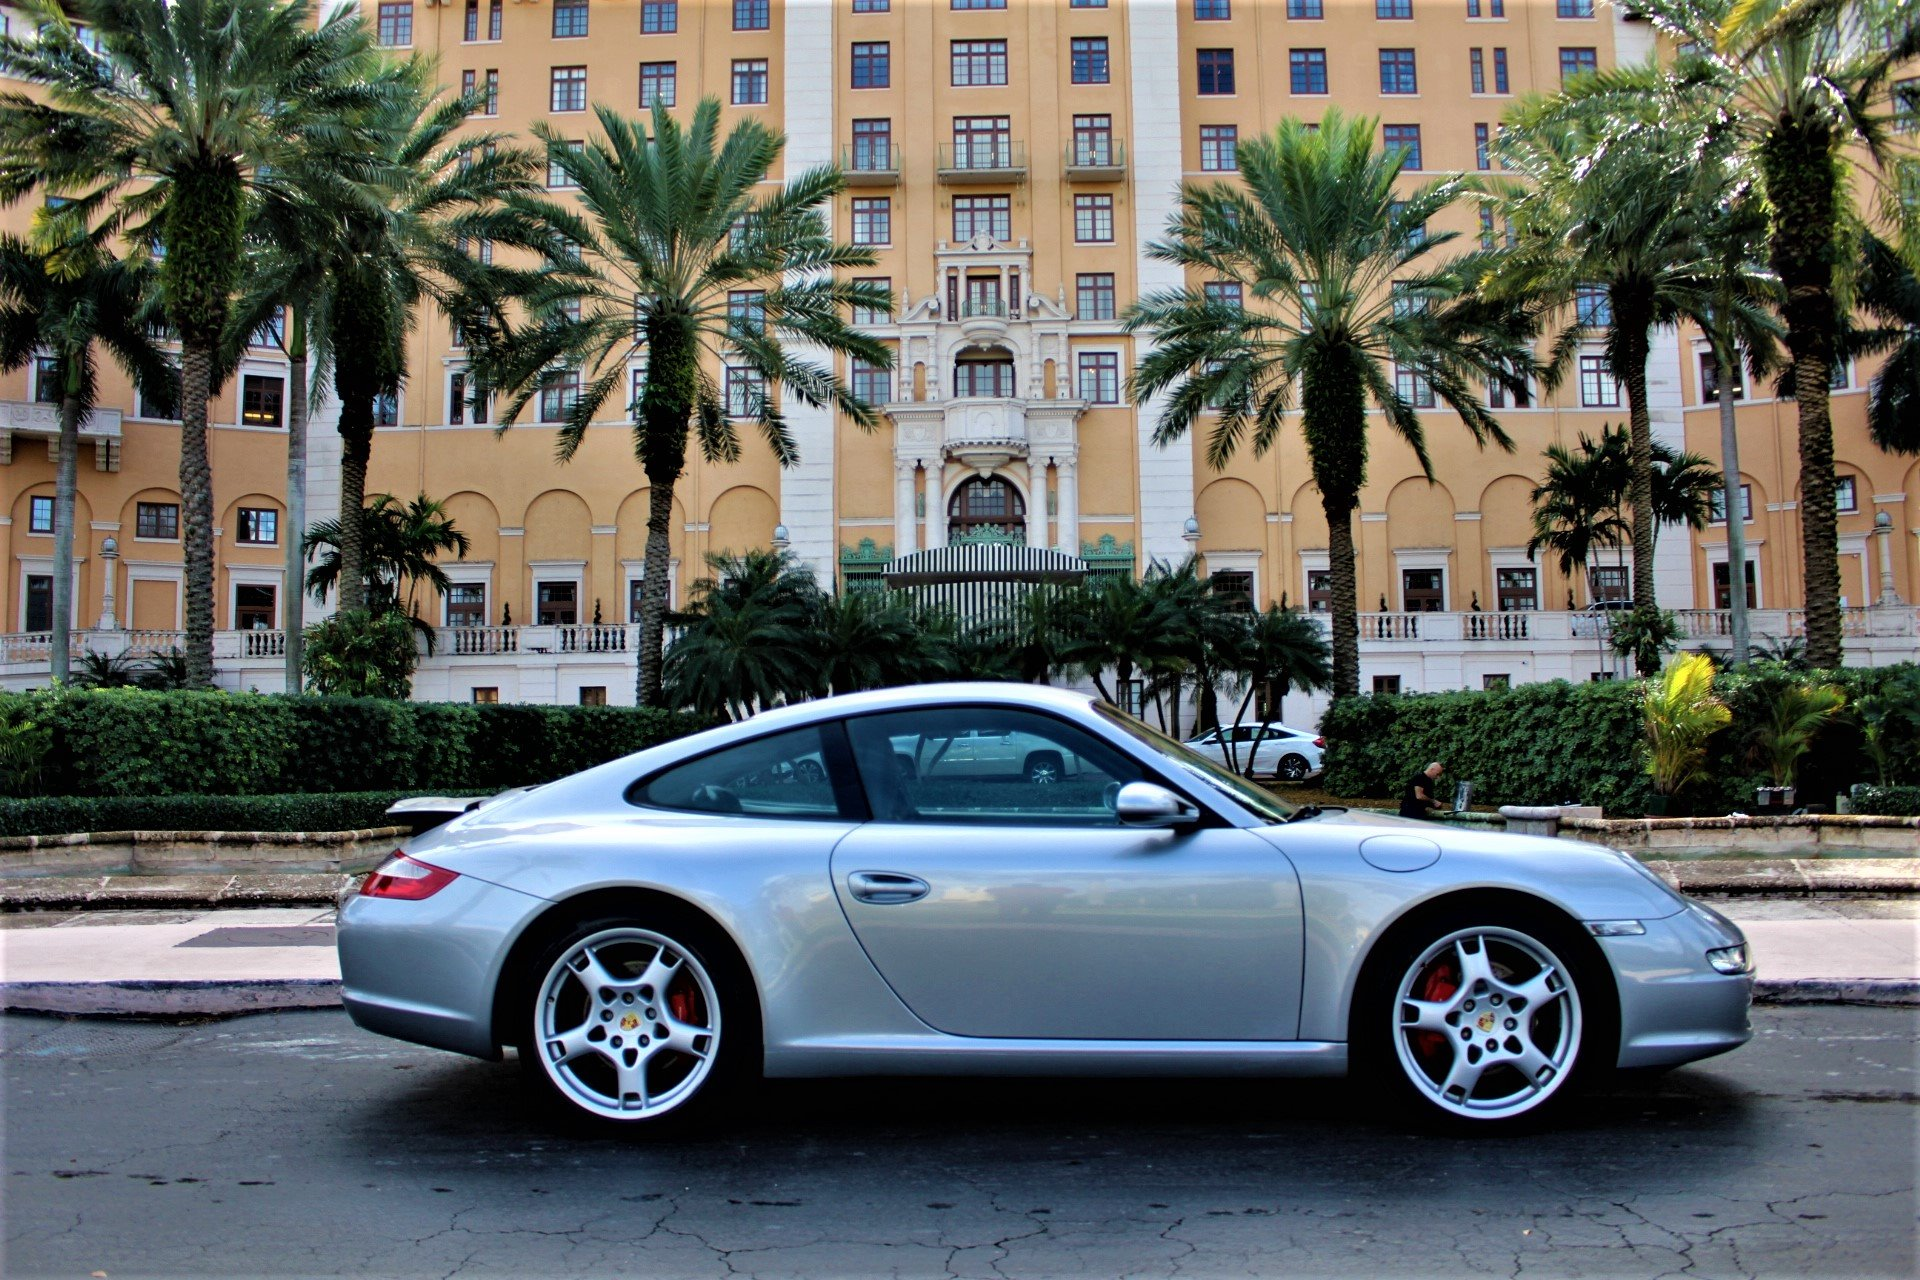 Used 2005 Porsche 911 Carrera S for sale Sold at The Gables Sports Cars in Miami FL 33146 1